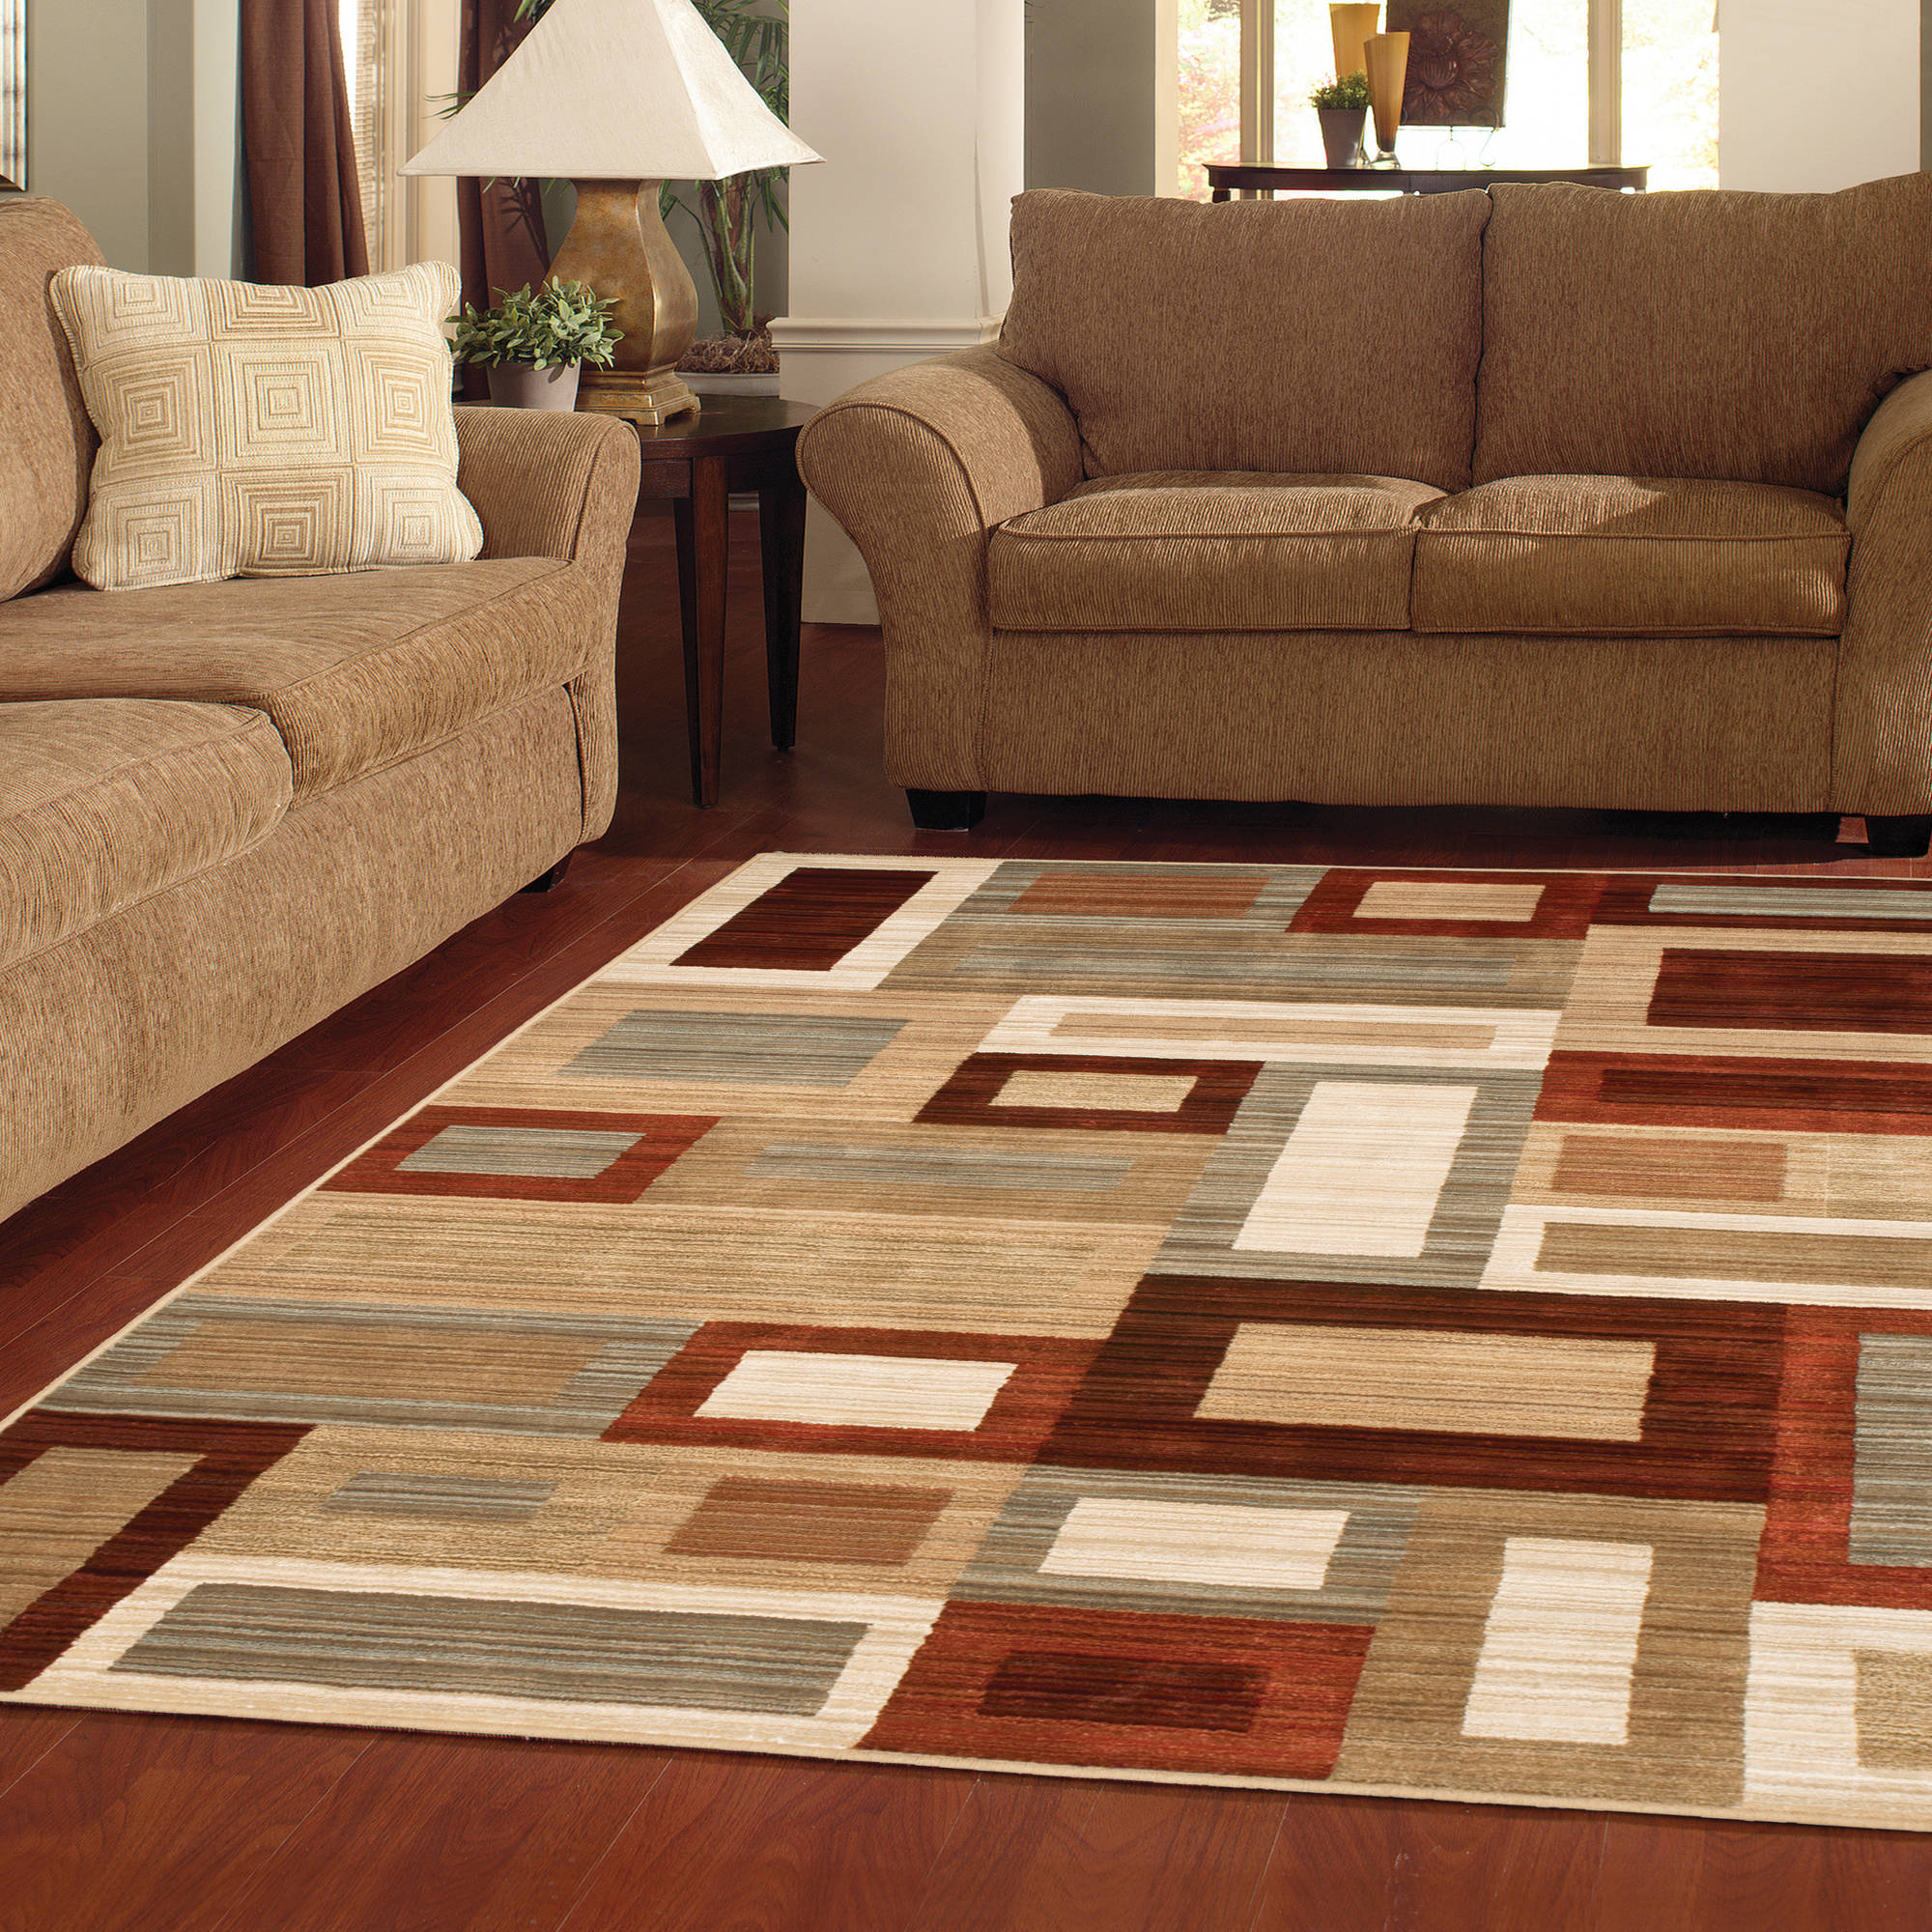 Merveilleux Better Homes And Gardens Franklin Squares Area Rug Or Runner